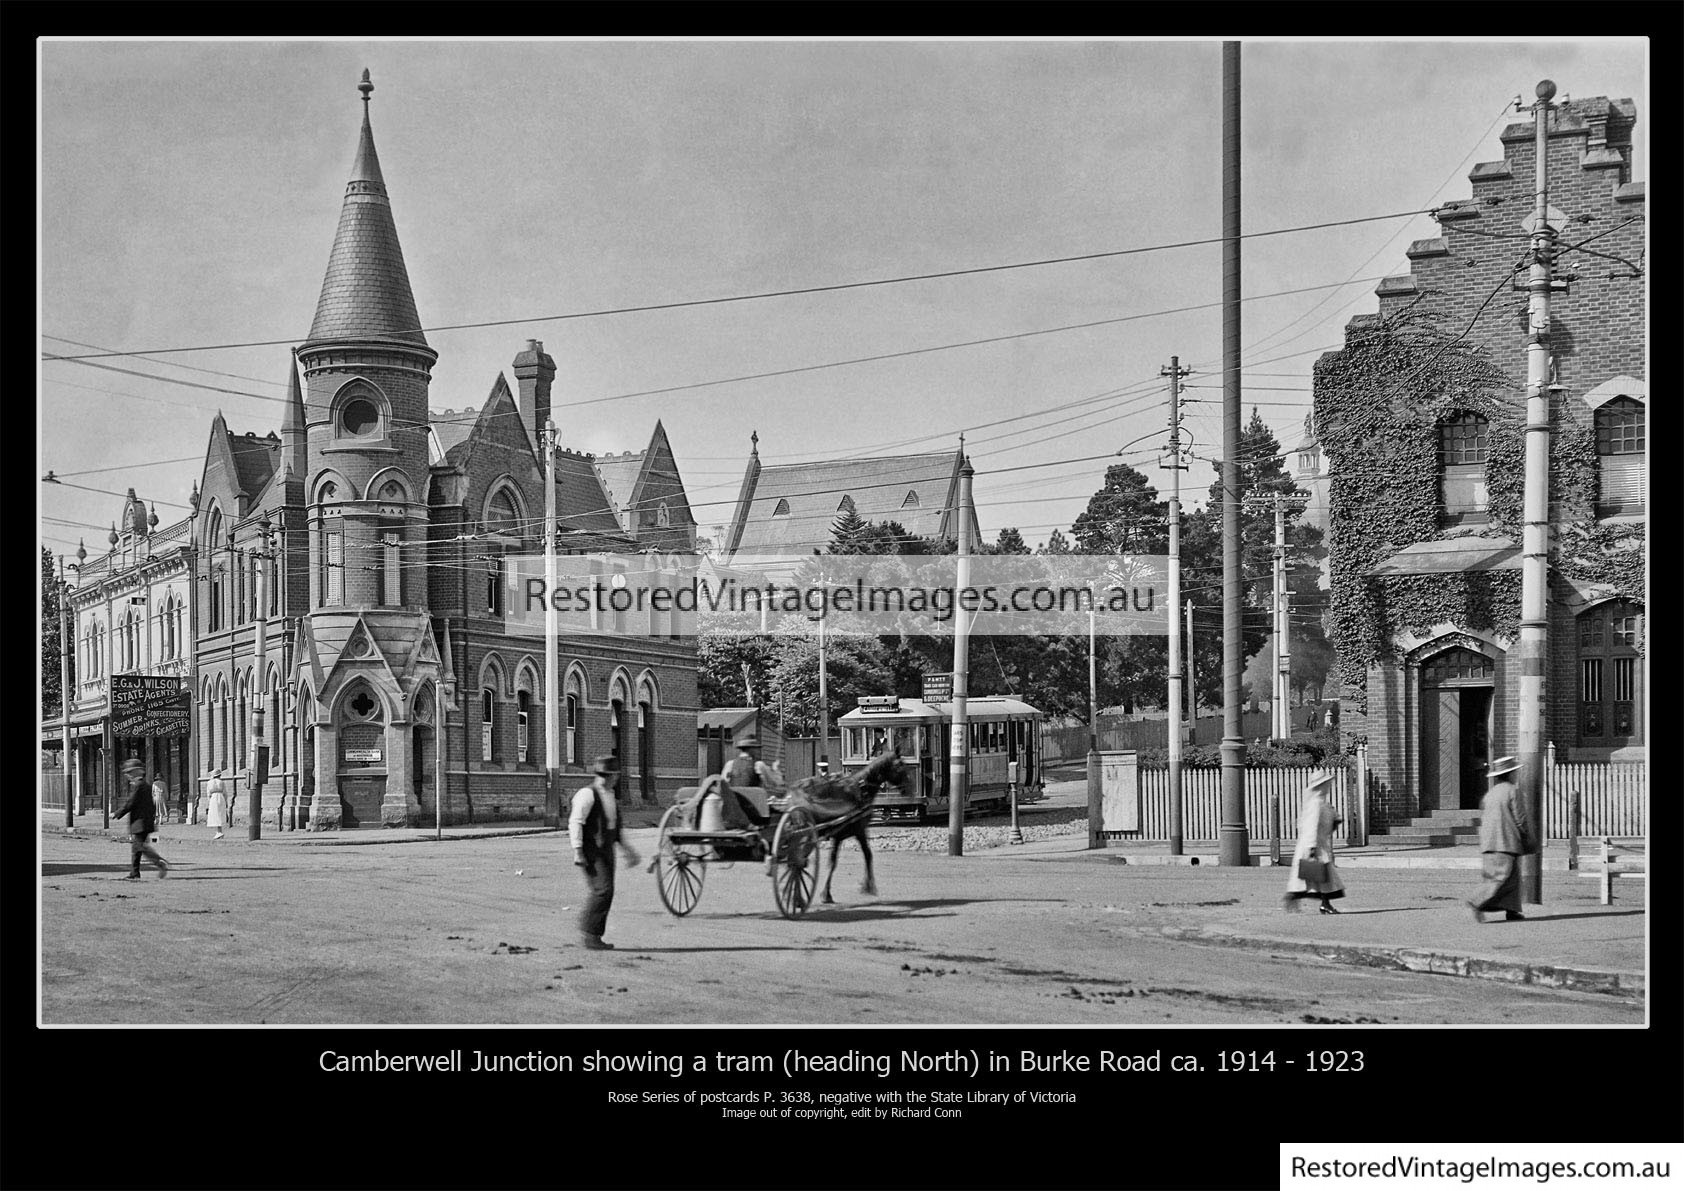 Camberwell Junction 1914 – 1923